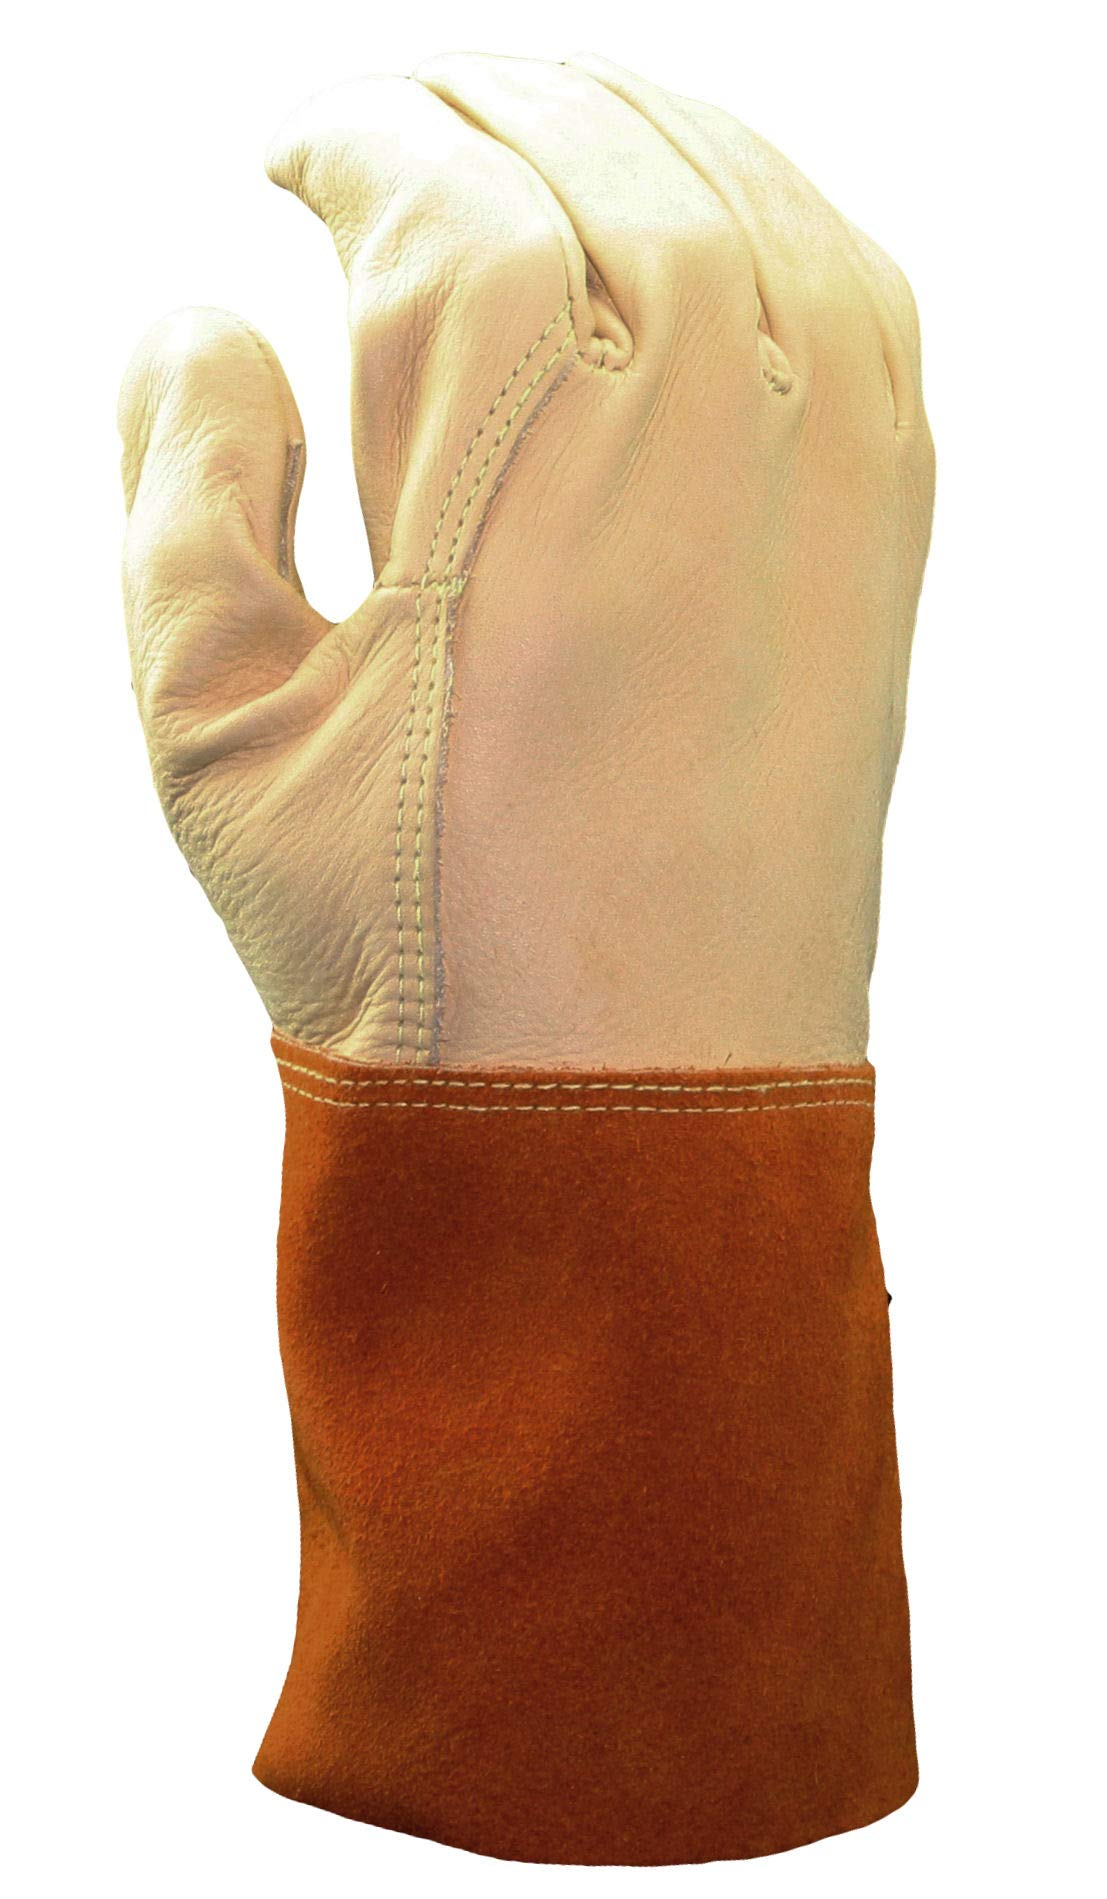 Cowhide Welder Gloves with Leather Gauntlet Cuff, Premium Grade | Beige/Orange Color, Unlined Lining, Kevlar Stitching Material - (Pack of 12) by Stauffer Glove & Safety (Image #3)